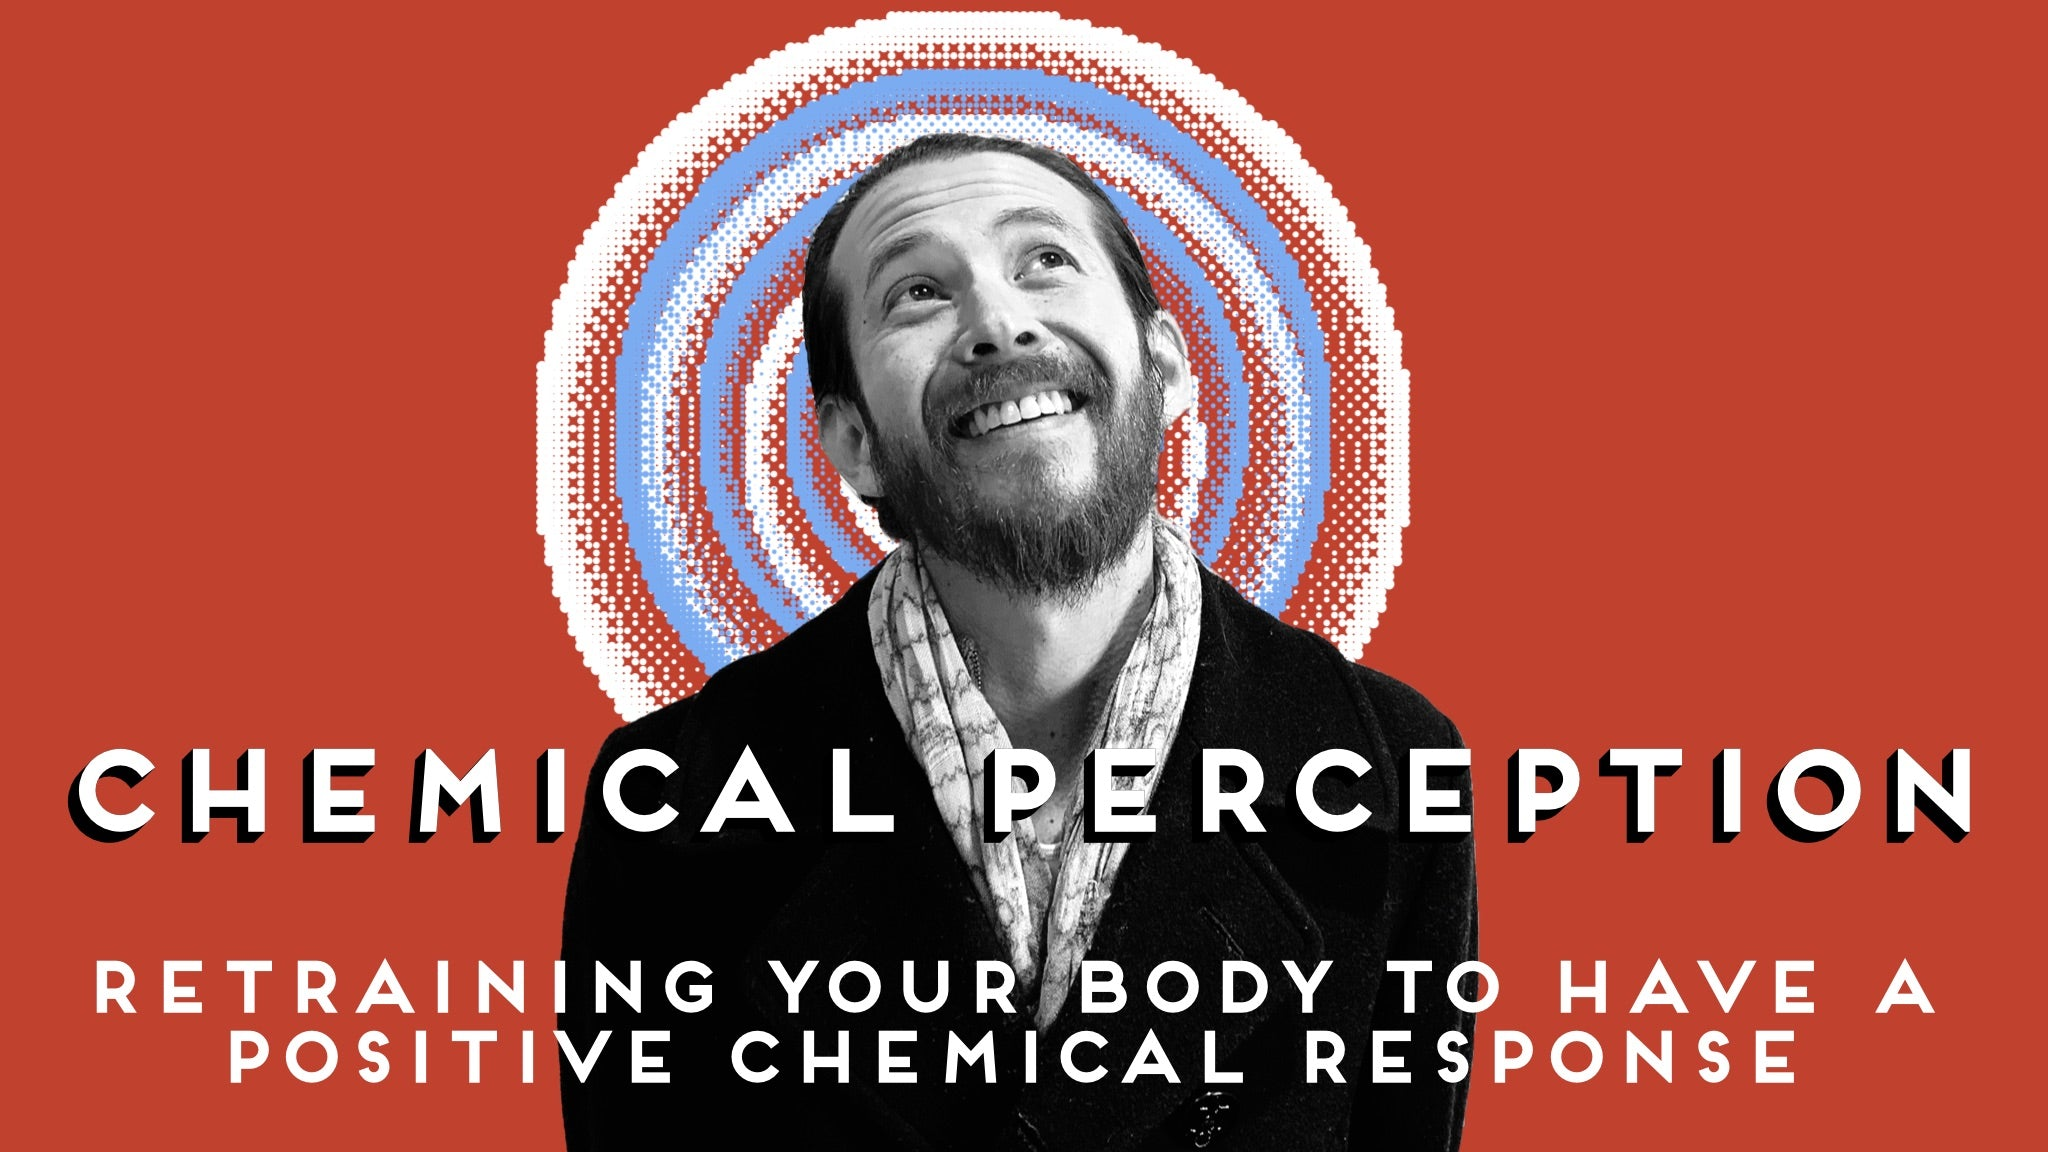 Doctor Motley - Chemical Perception